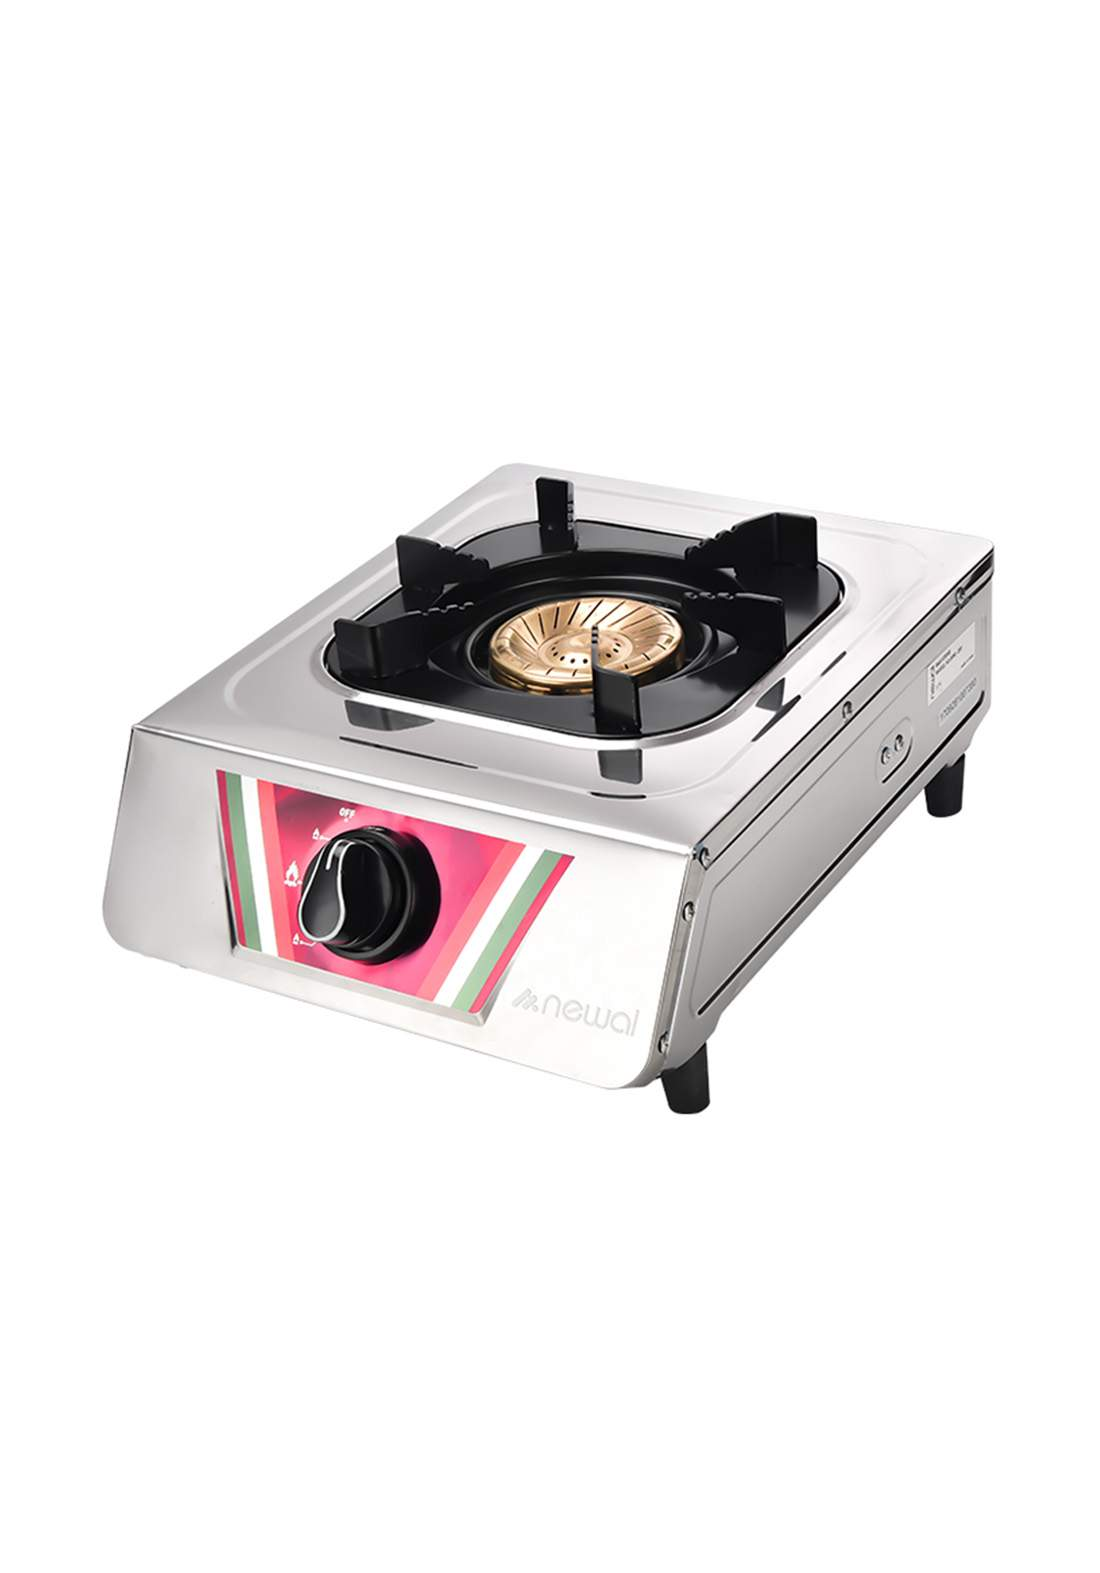 Newal Hob-281 Stainless Steel Table Top Cooker 1 طباخ منضدي